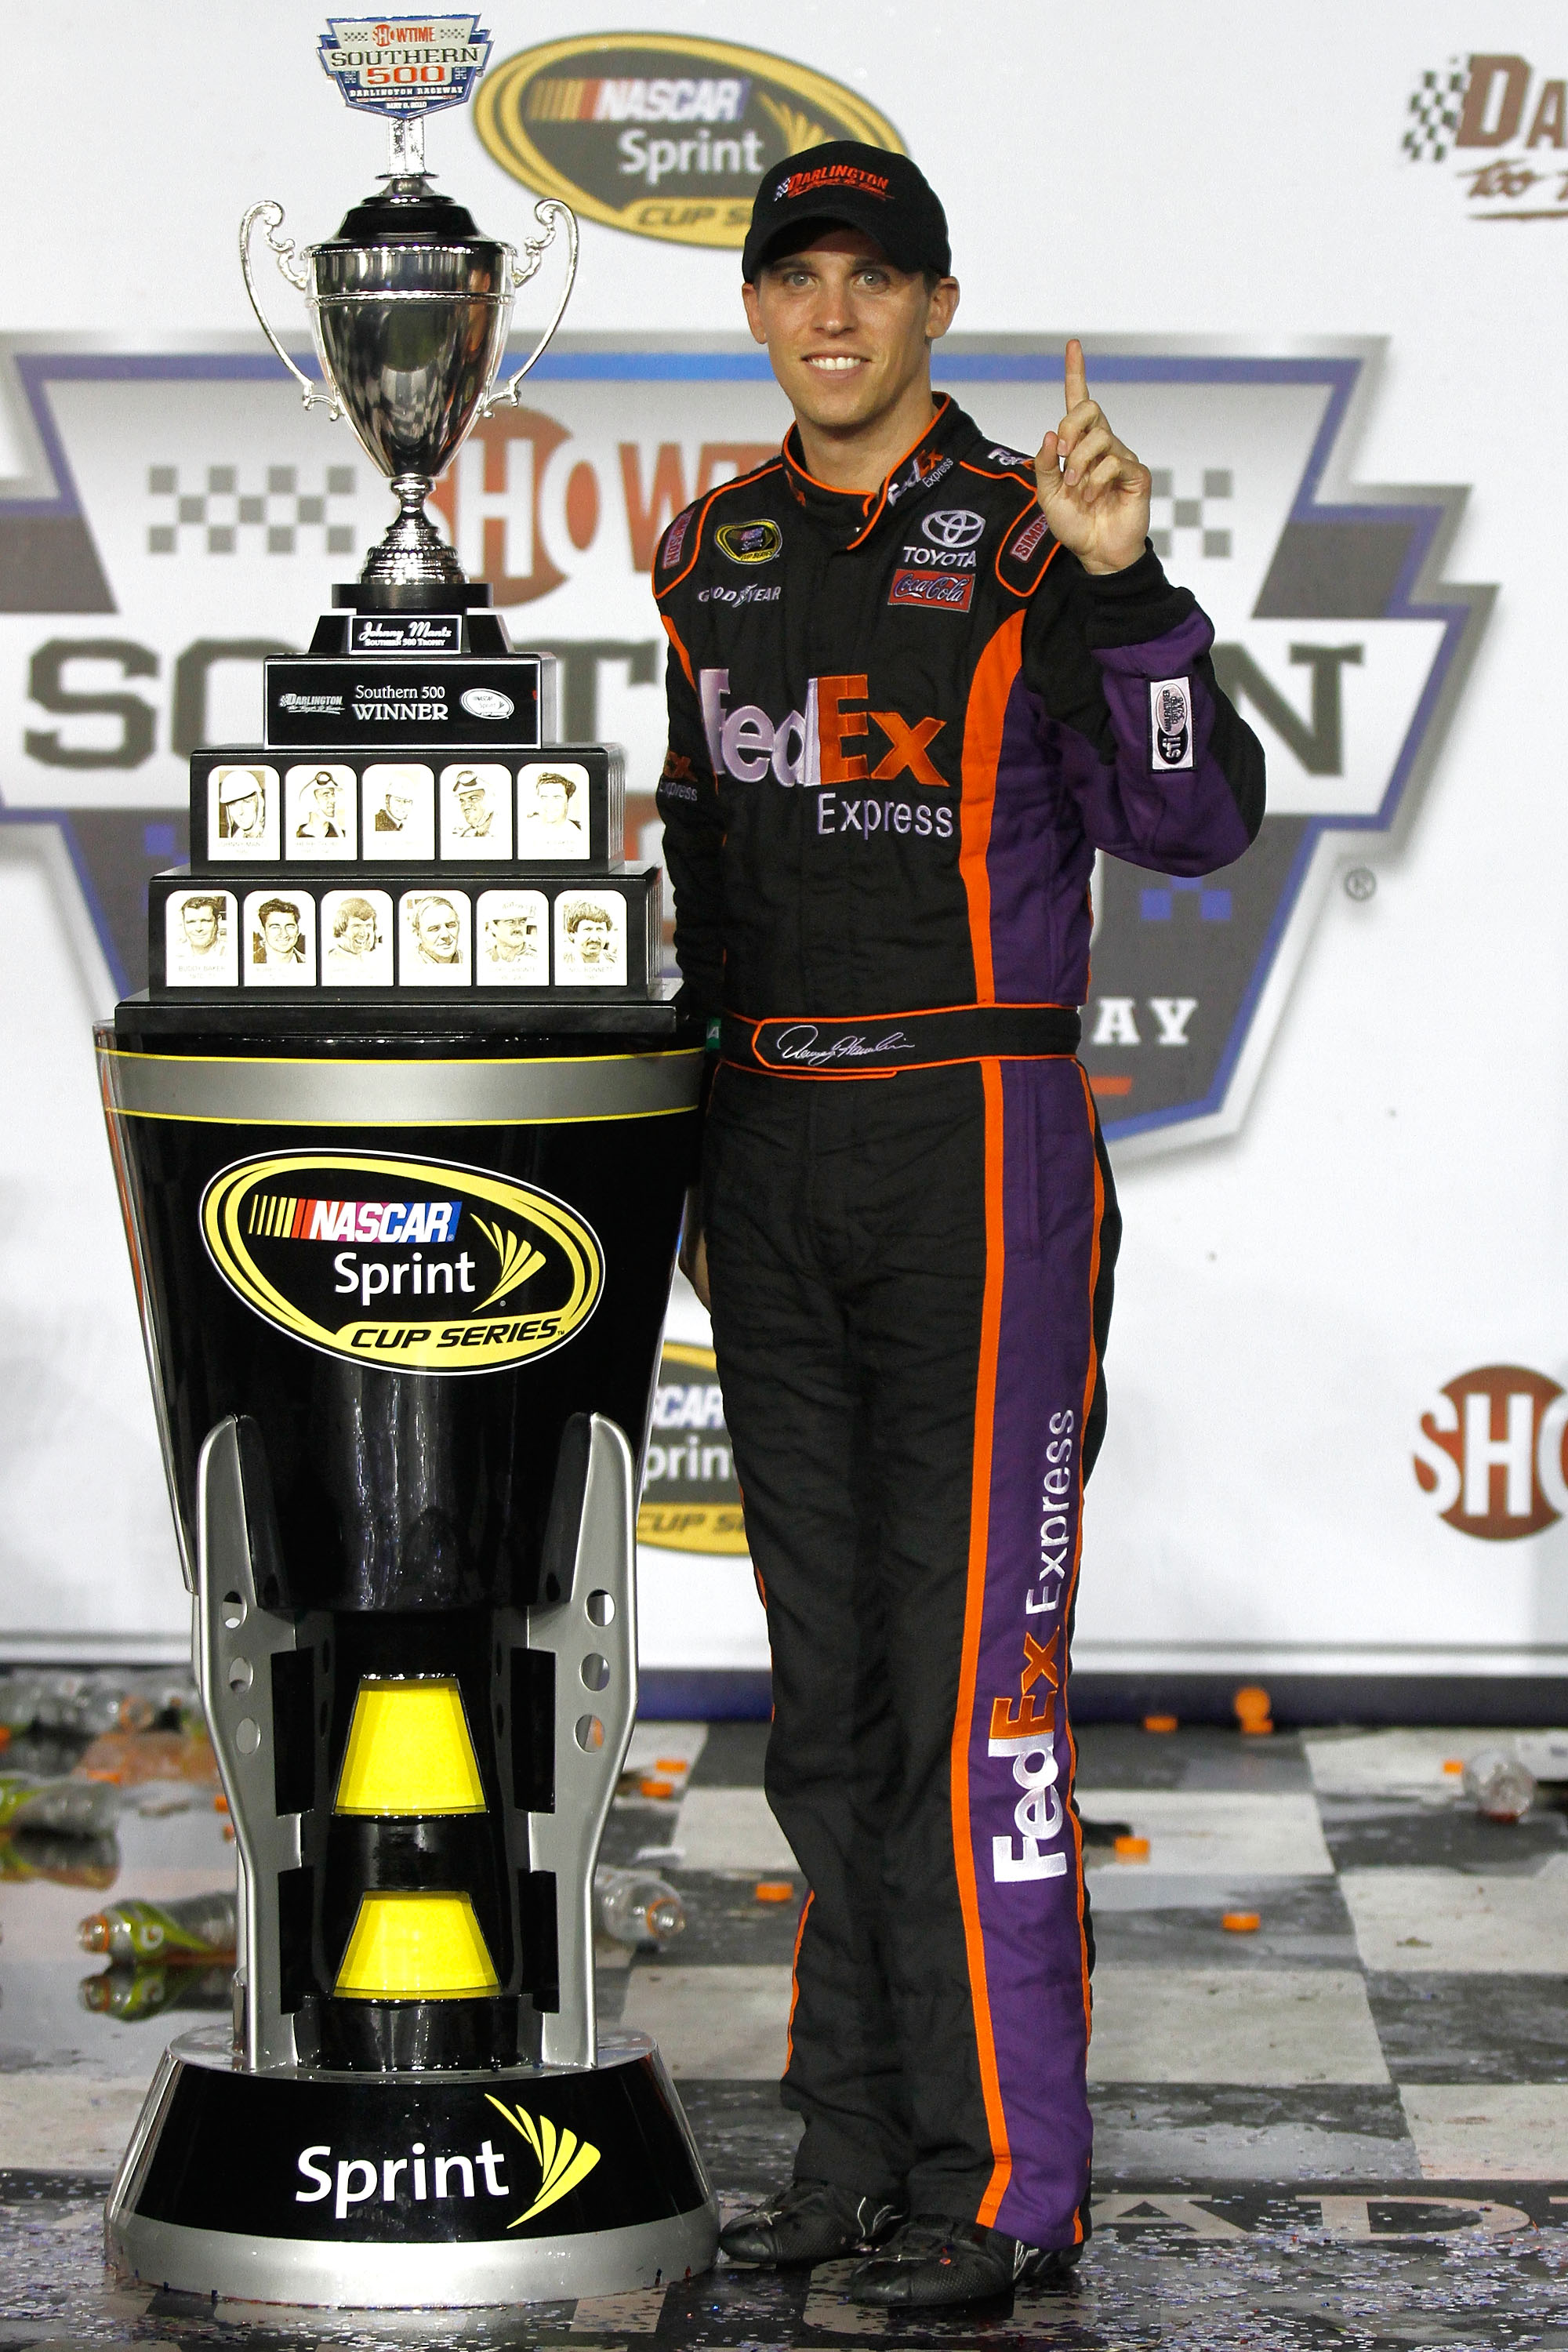 DARLINGTON, SC - MAY 08:  Denny Hamlin, driver of the #11 FedEx Express Toyota, celebrates with the trophy in victory lane in celebration of winning the NASCAR Sprint Cup series SHOWTIME Southern 500 at Darlington Raceway on May 8, 2010 in Darlington, Sou